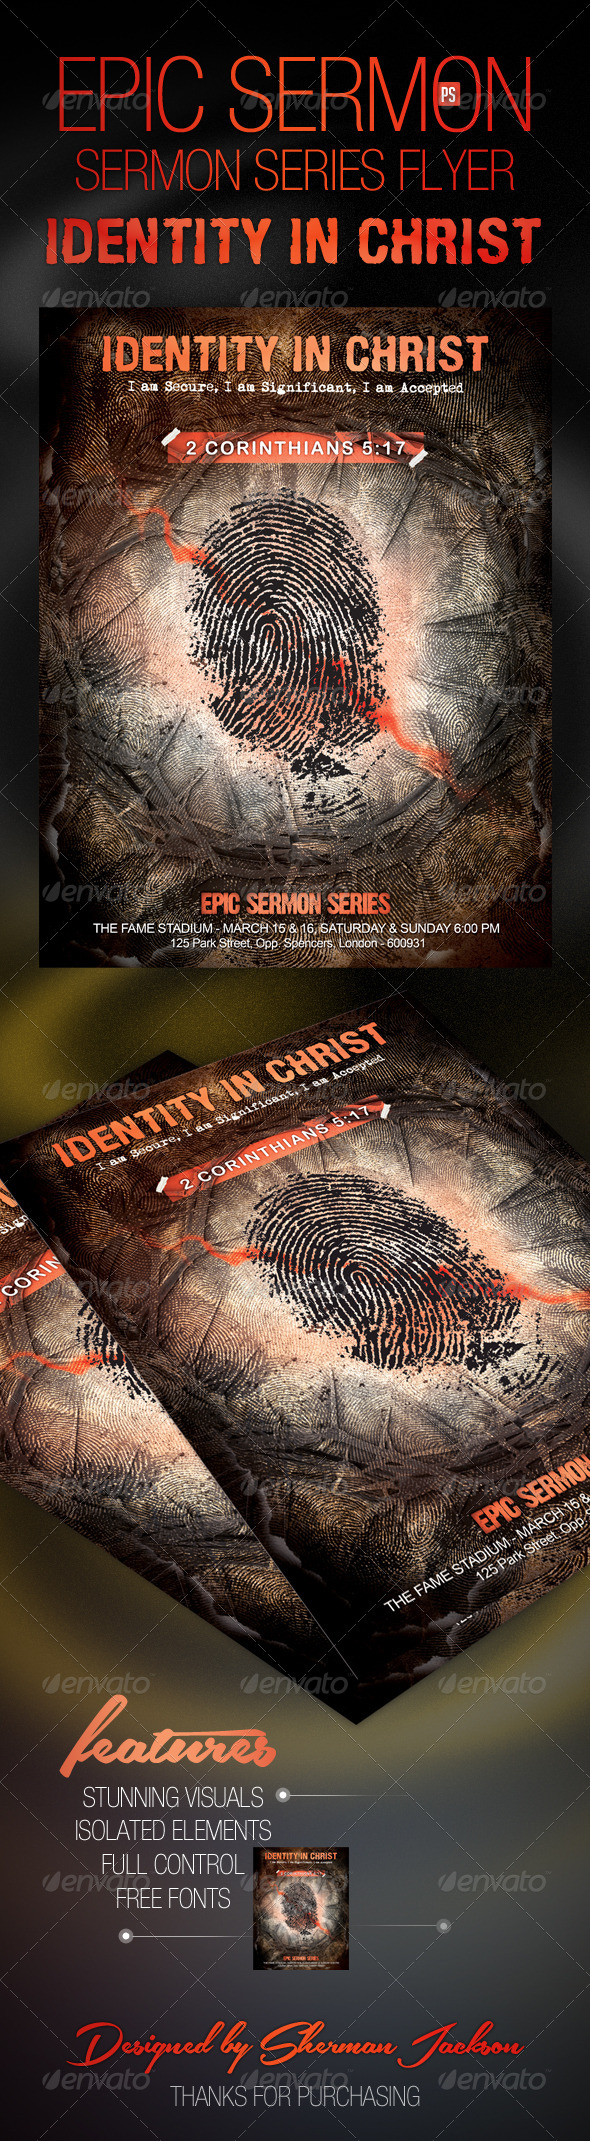 GraphicRiver Epic Sermon Series Flyer Identity in Christ 7857455